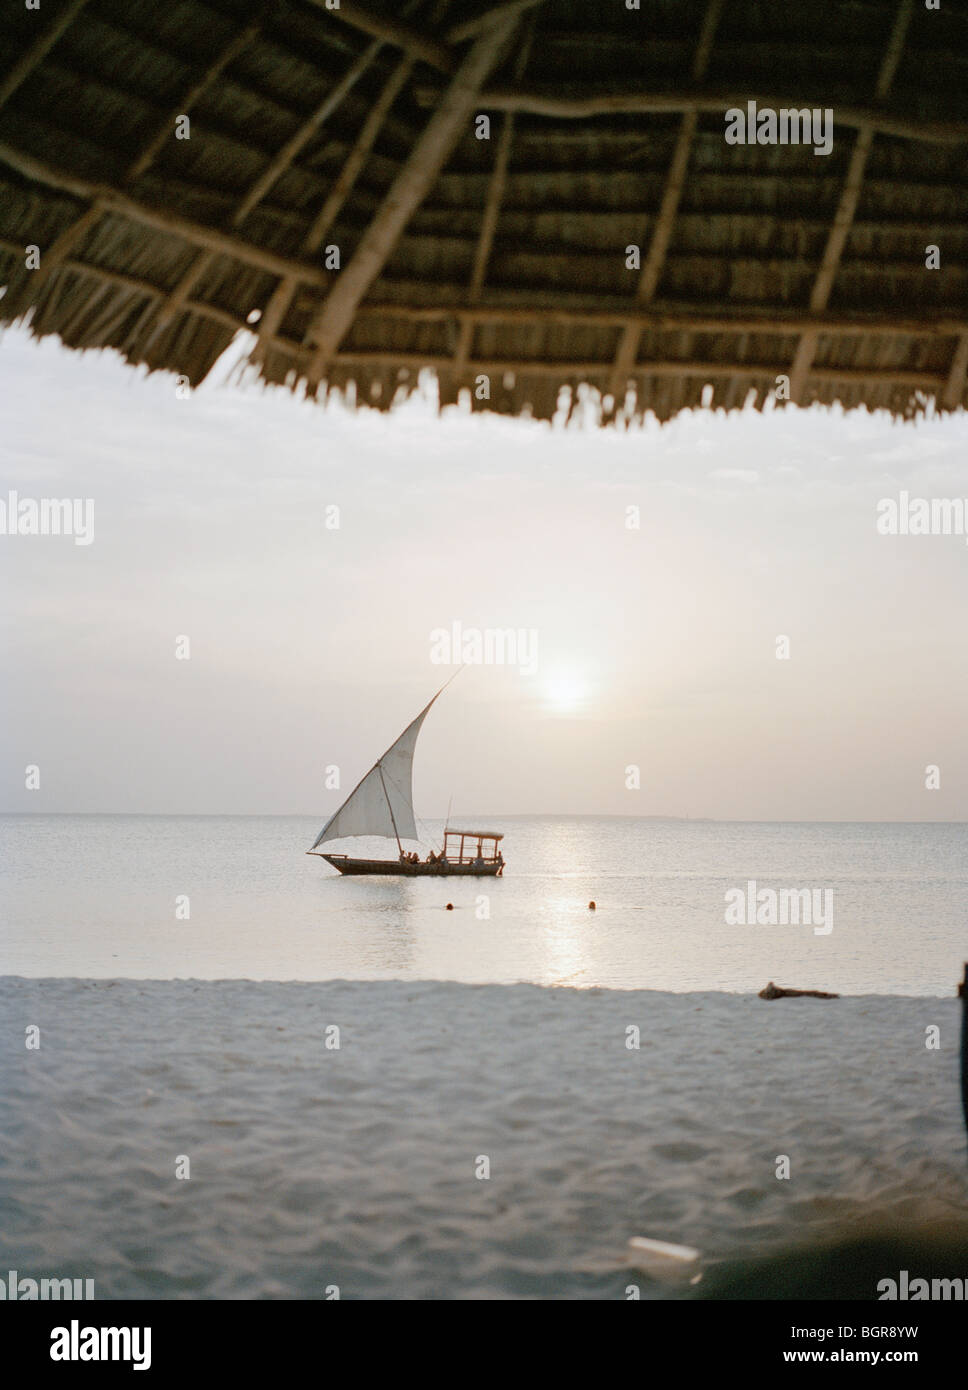 A sailboat passing by a beach - Stock Image